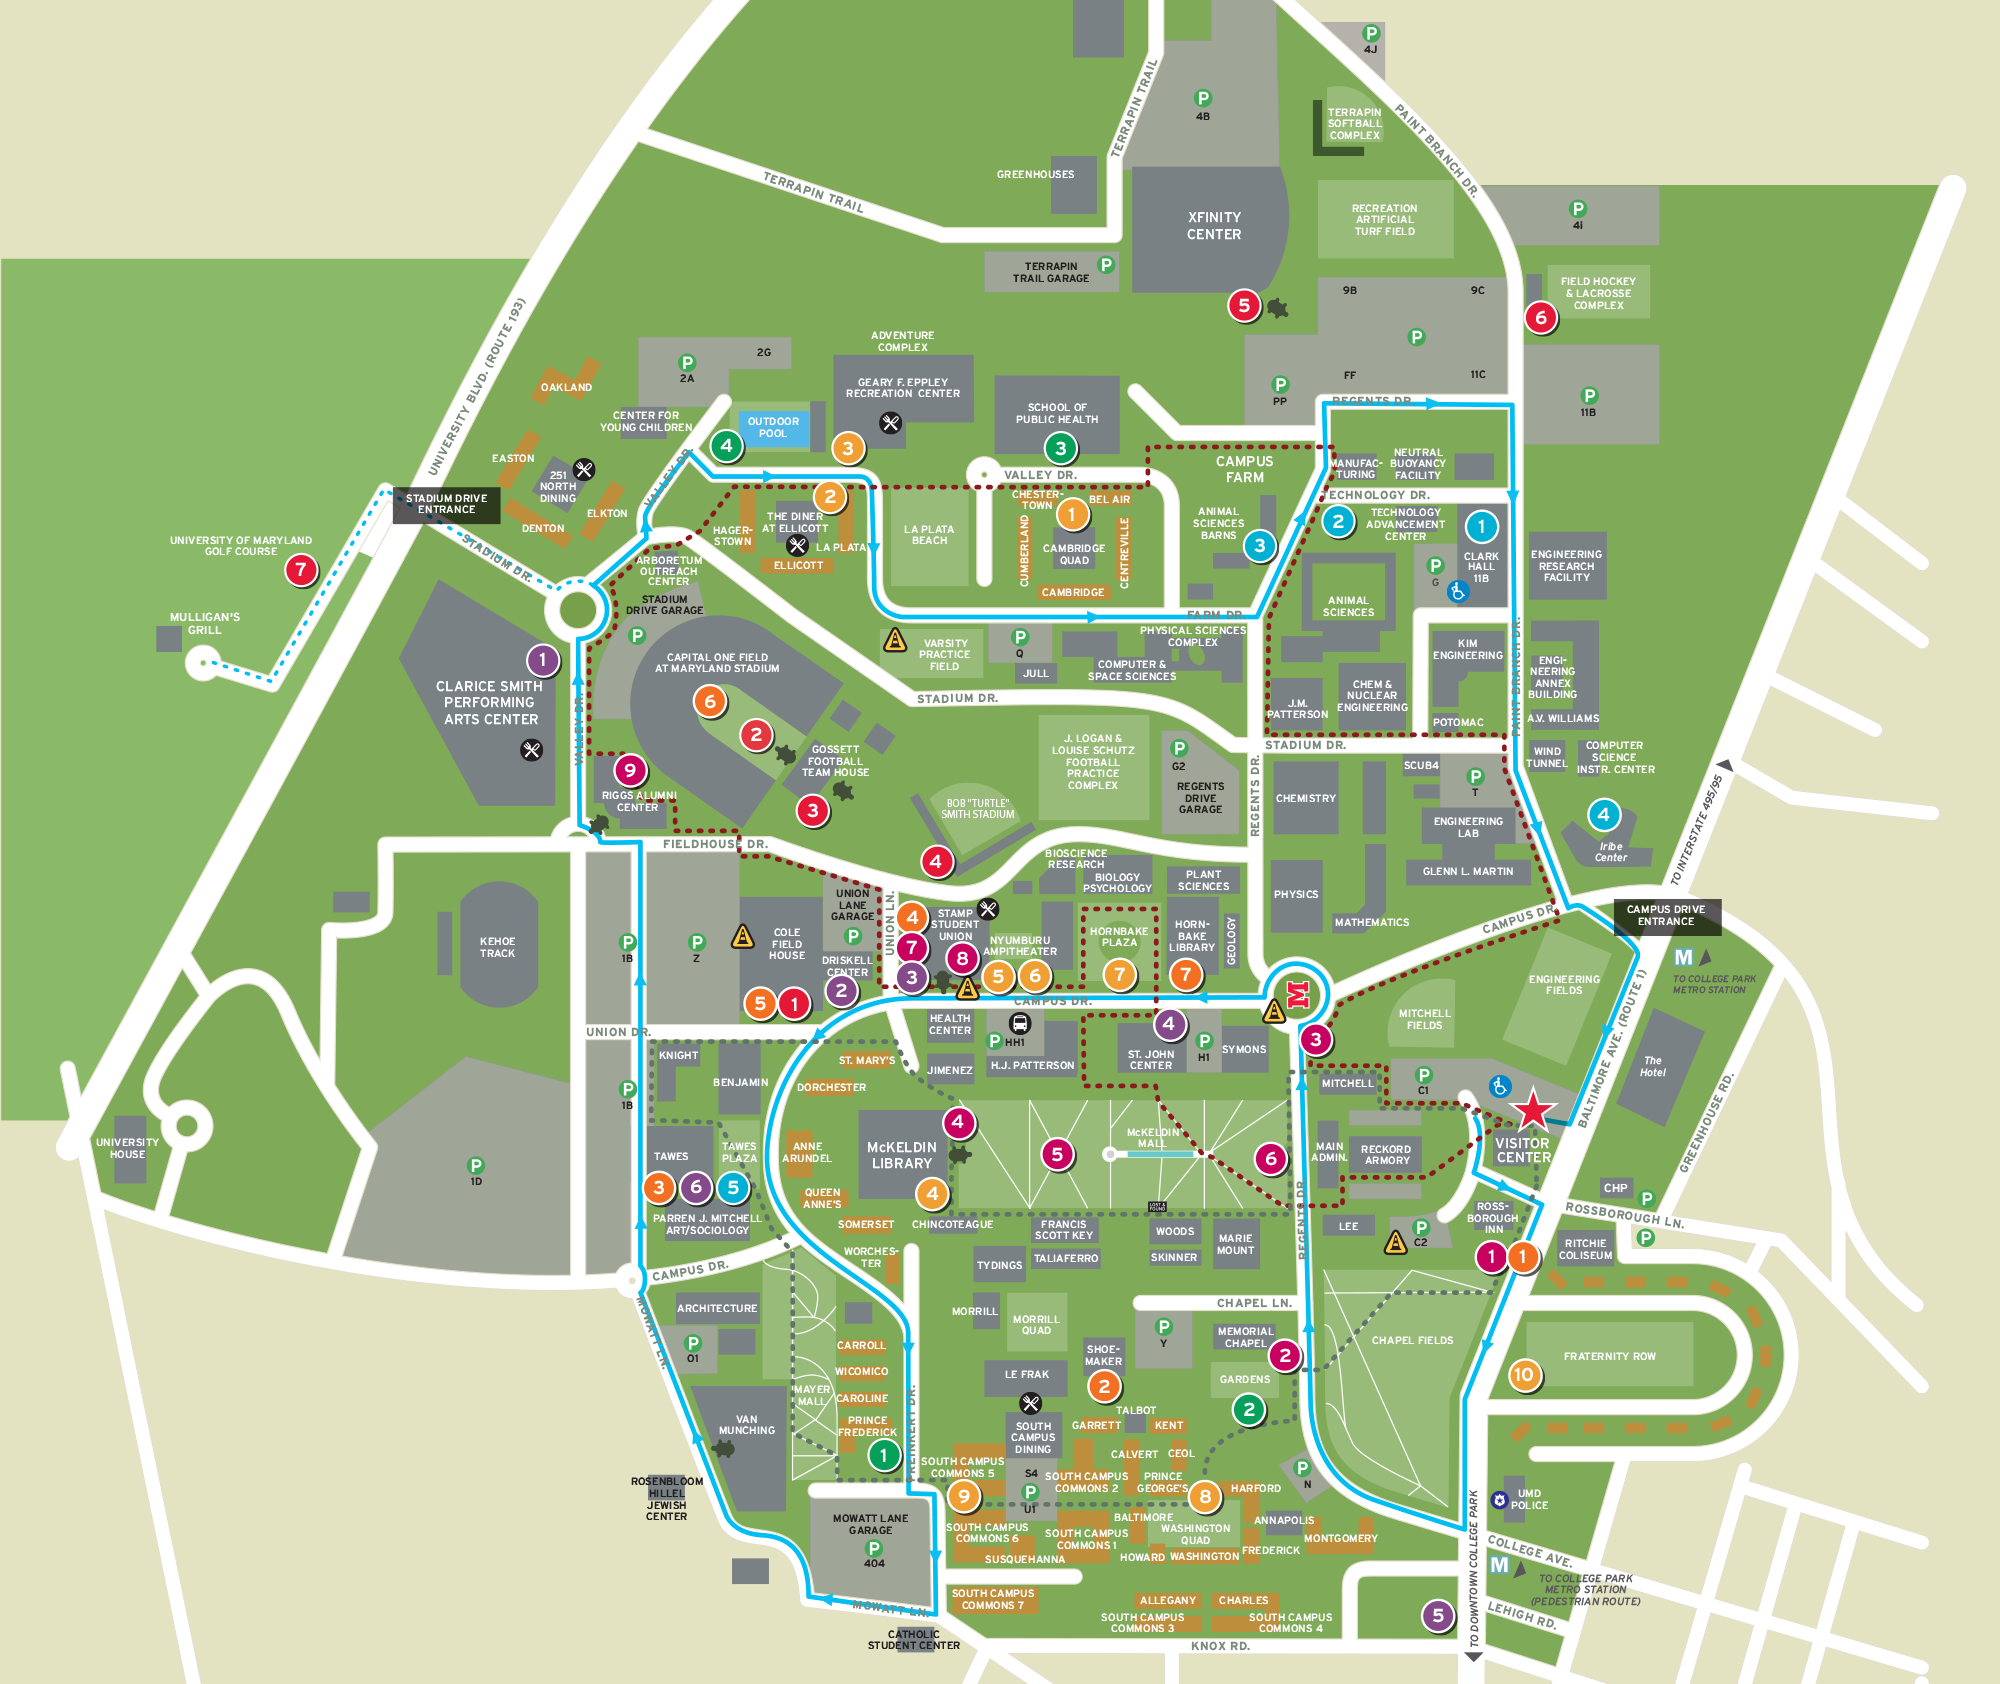 University of Maryland Campus Map